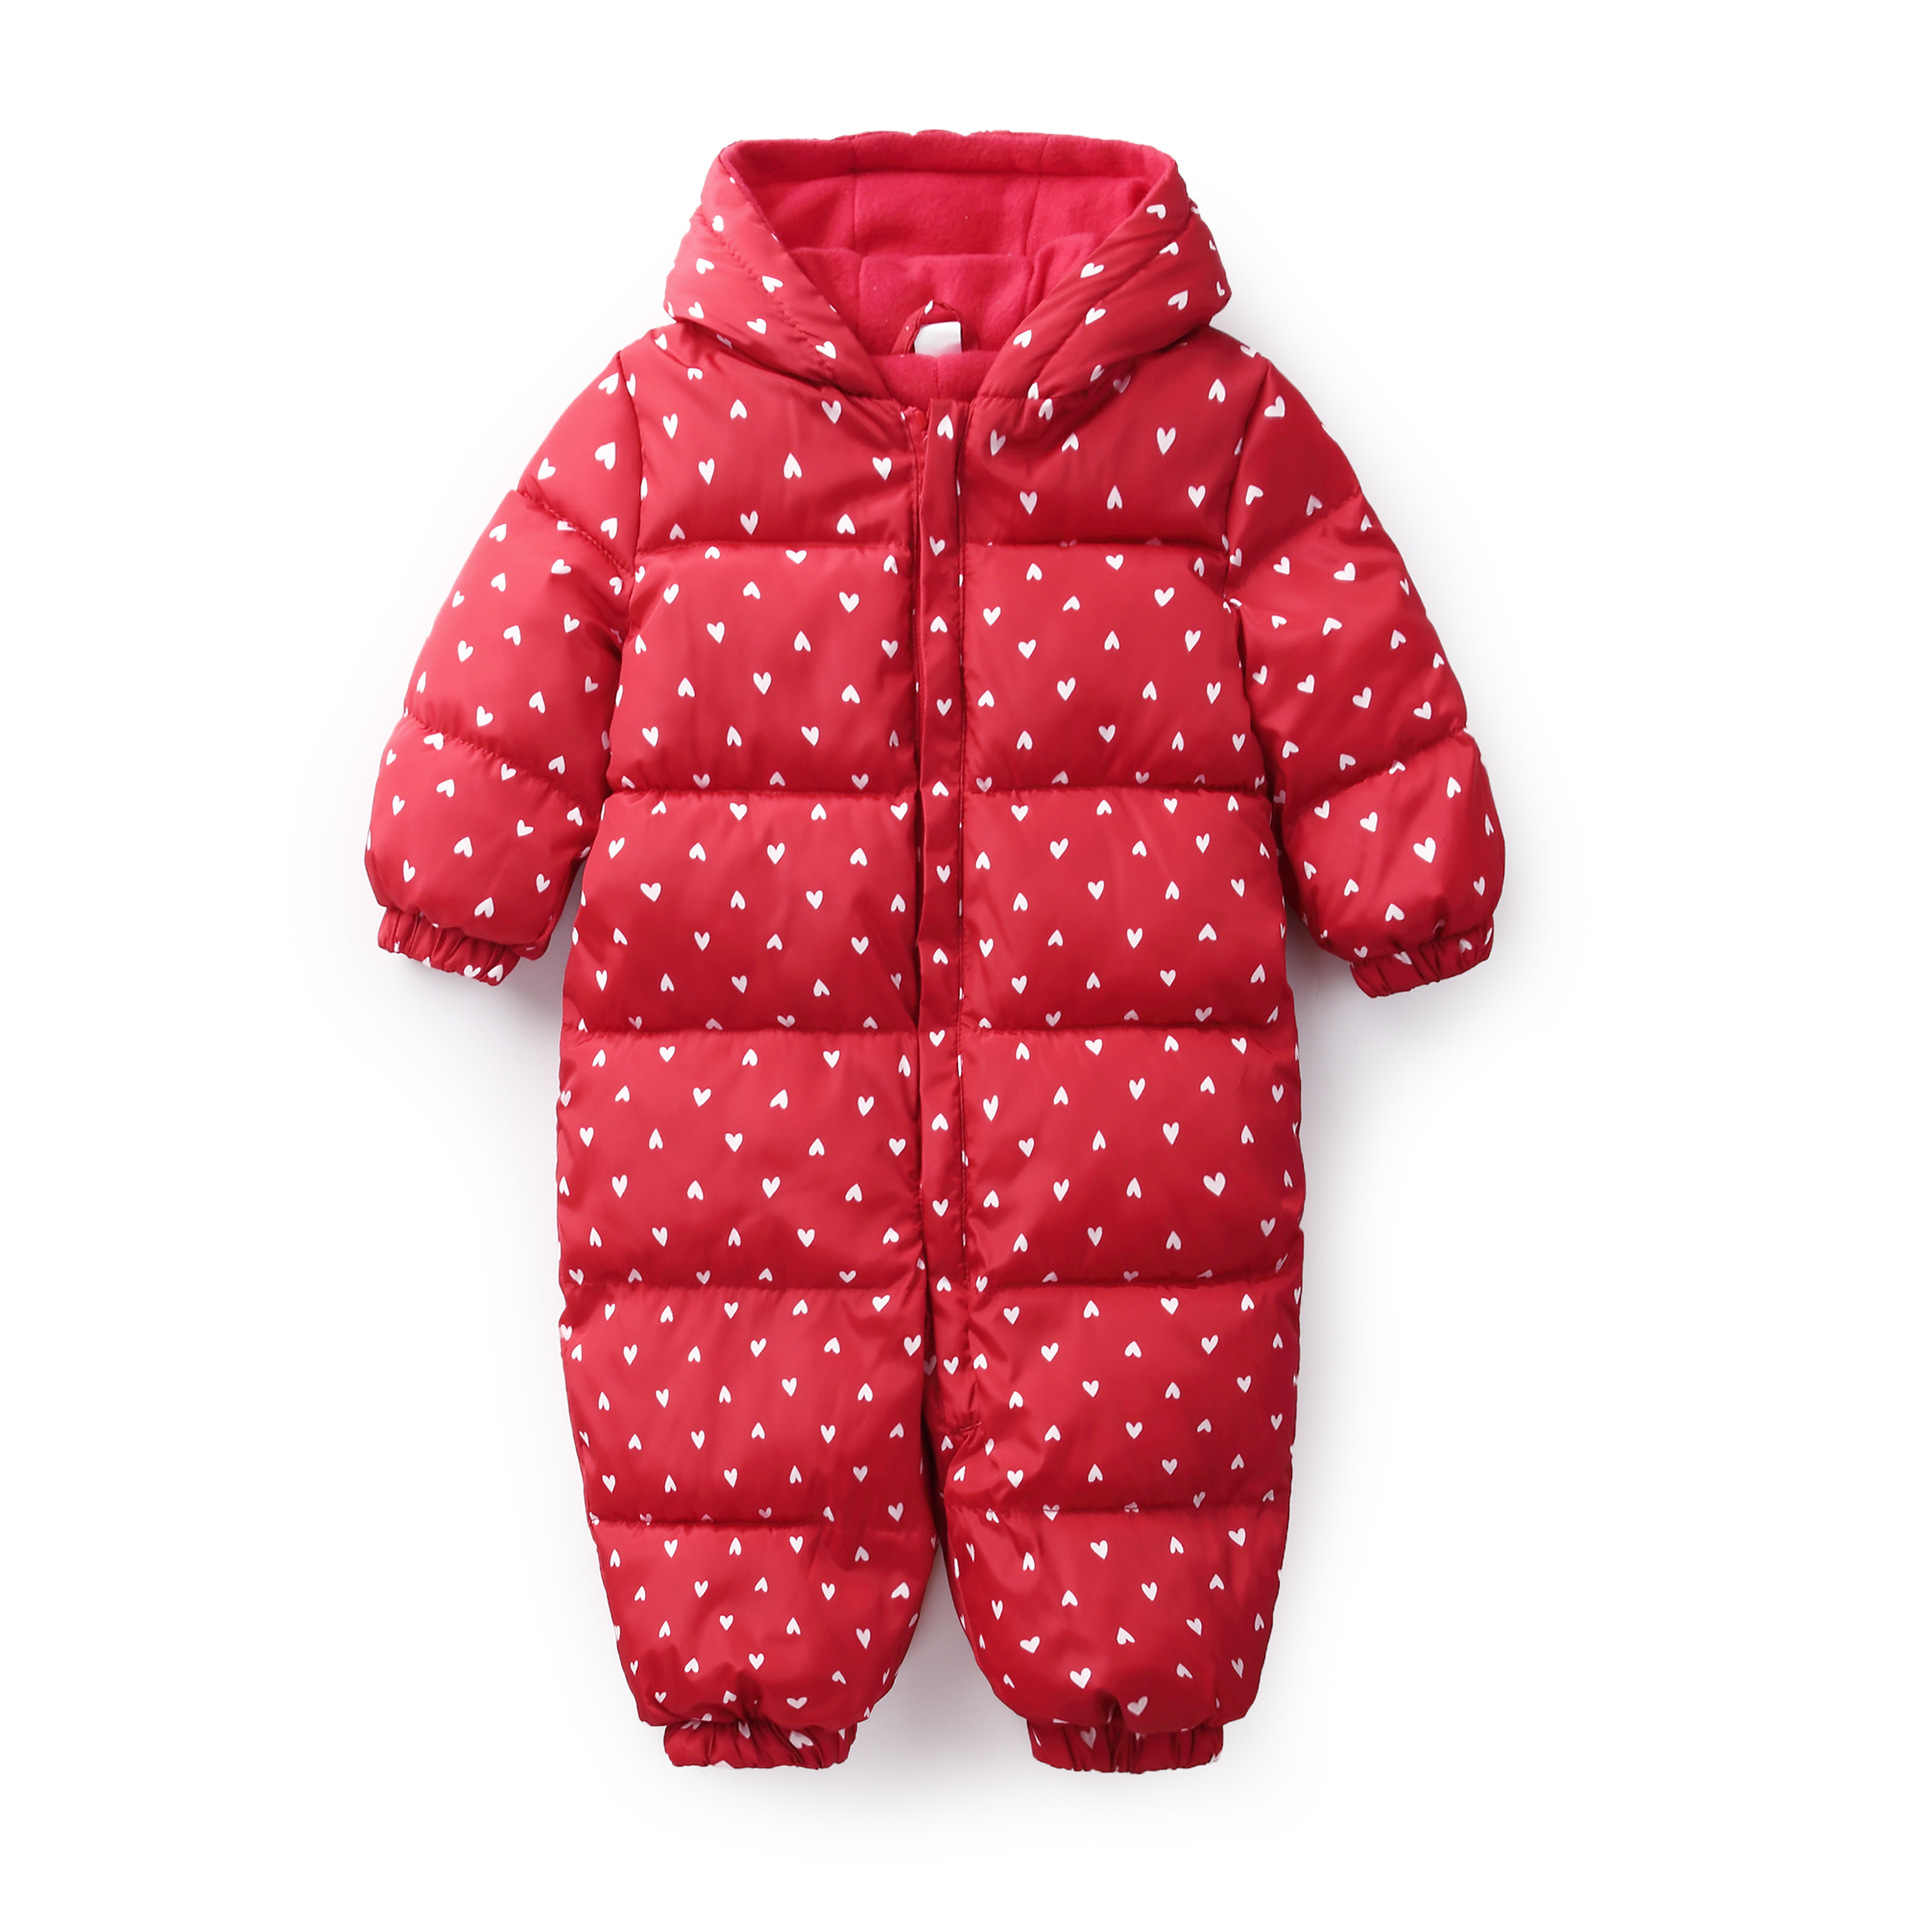 2019 Autumn Winter Newborn Baby Clothes Jumpsuit Warm Boys Snowsuit For Girls Hooded Overalls For Children Unisex Baby Romper